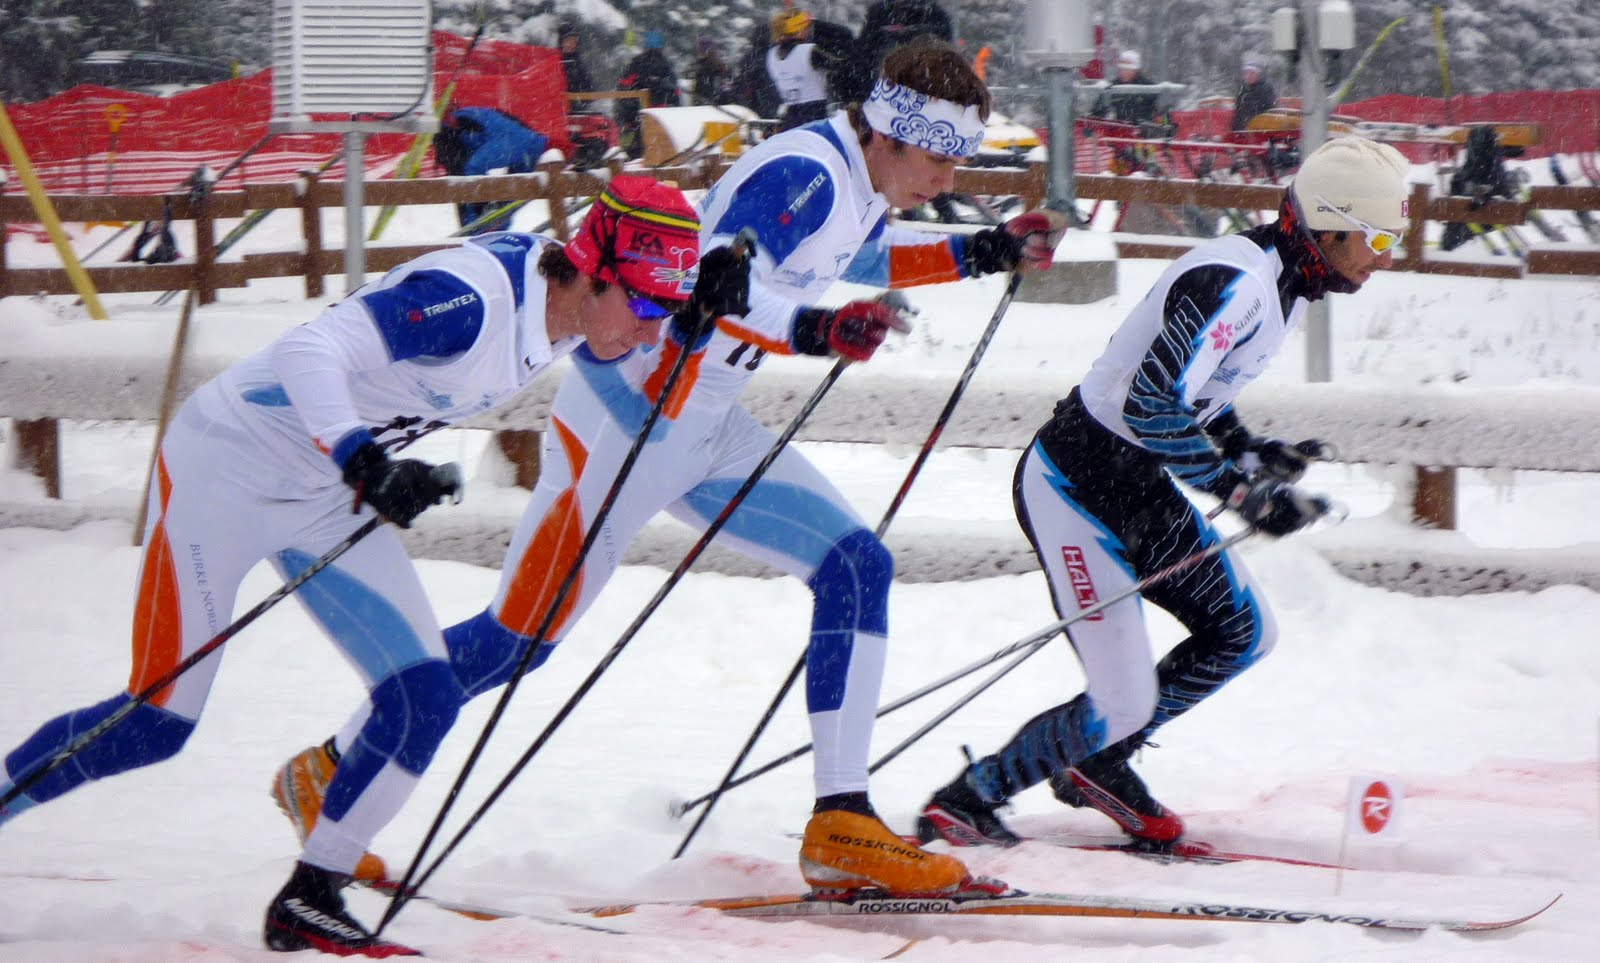 Kate Barton Ey >> Burke Mountain Academy Nordic Ski Team: First Race Of The Season- First Place Of The Season